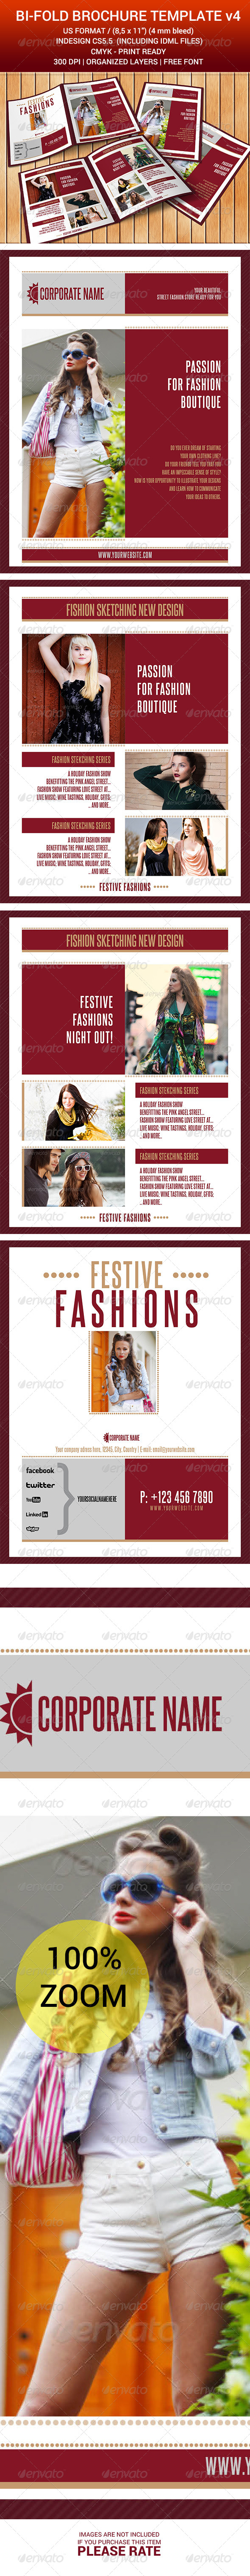 Bi-Fold Brochure Indesign Template v4 - Corporate Flyers